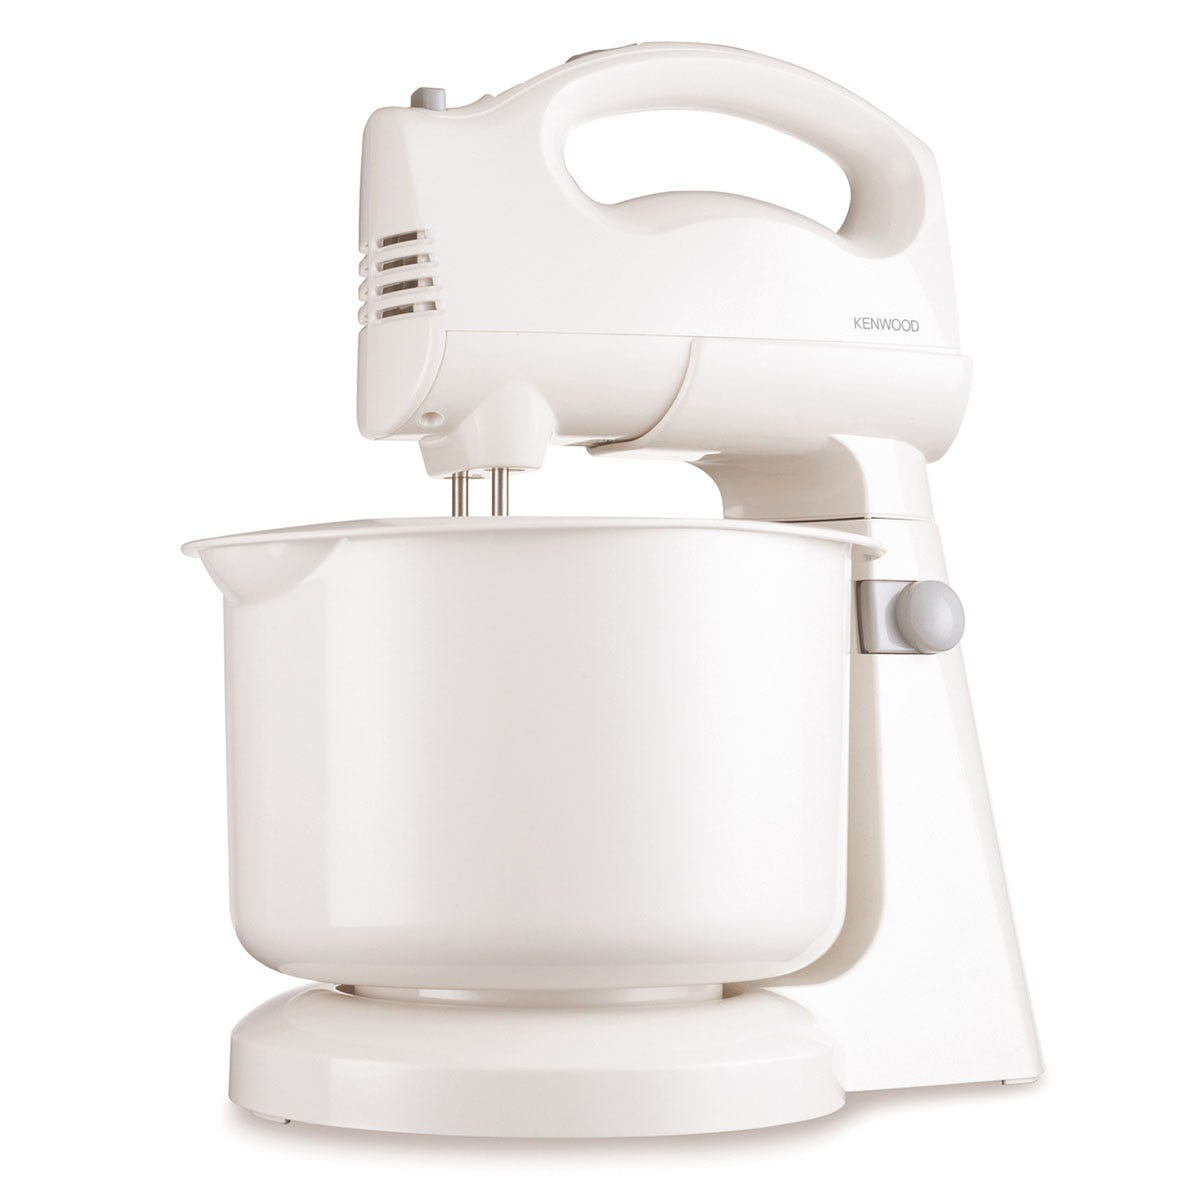 Kenwood HM400 180W Five-Speed Stand Mixer with 1.5L Automatic Rotating Bowl - White